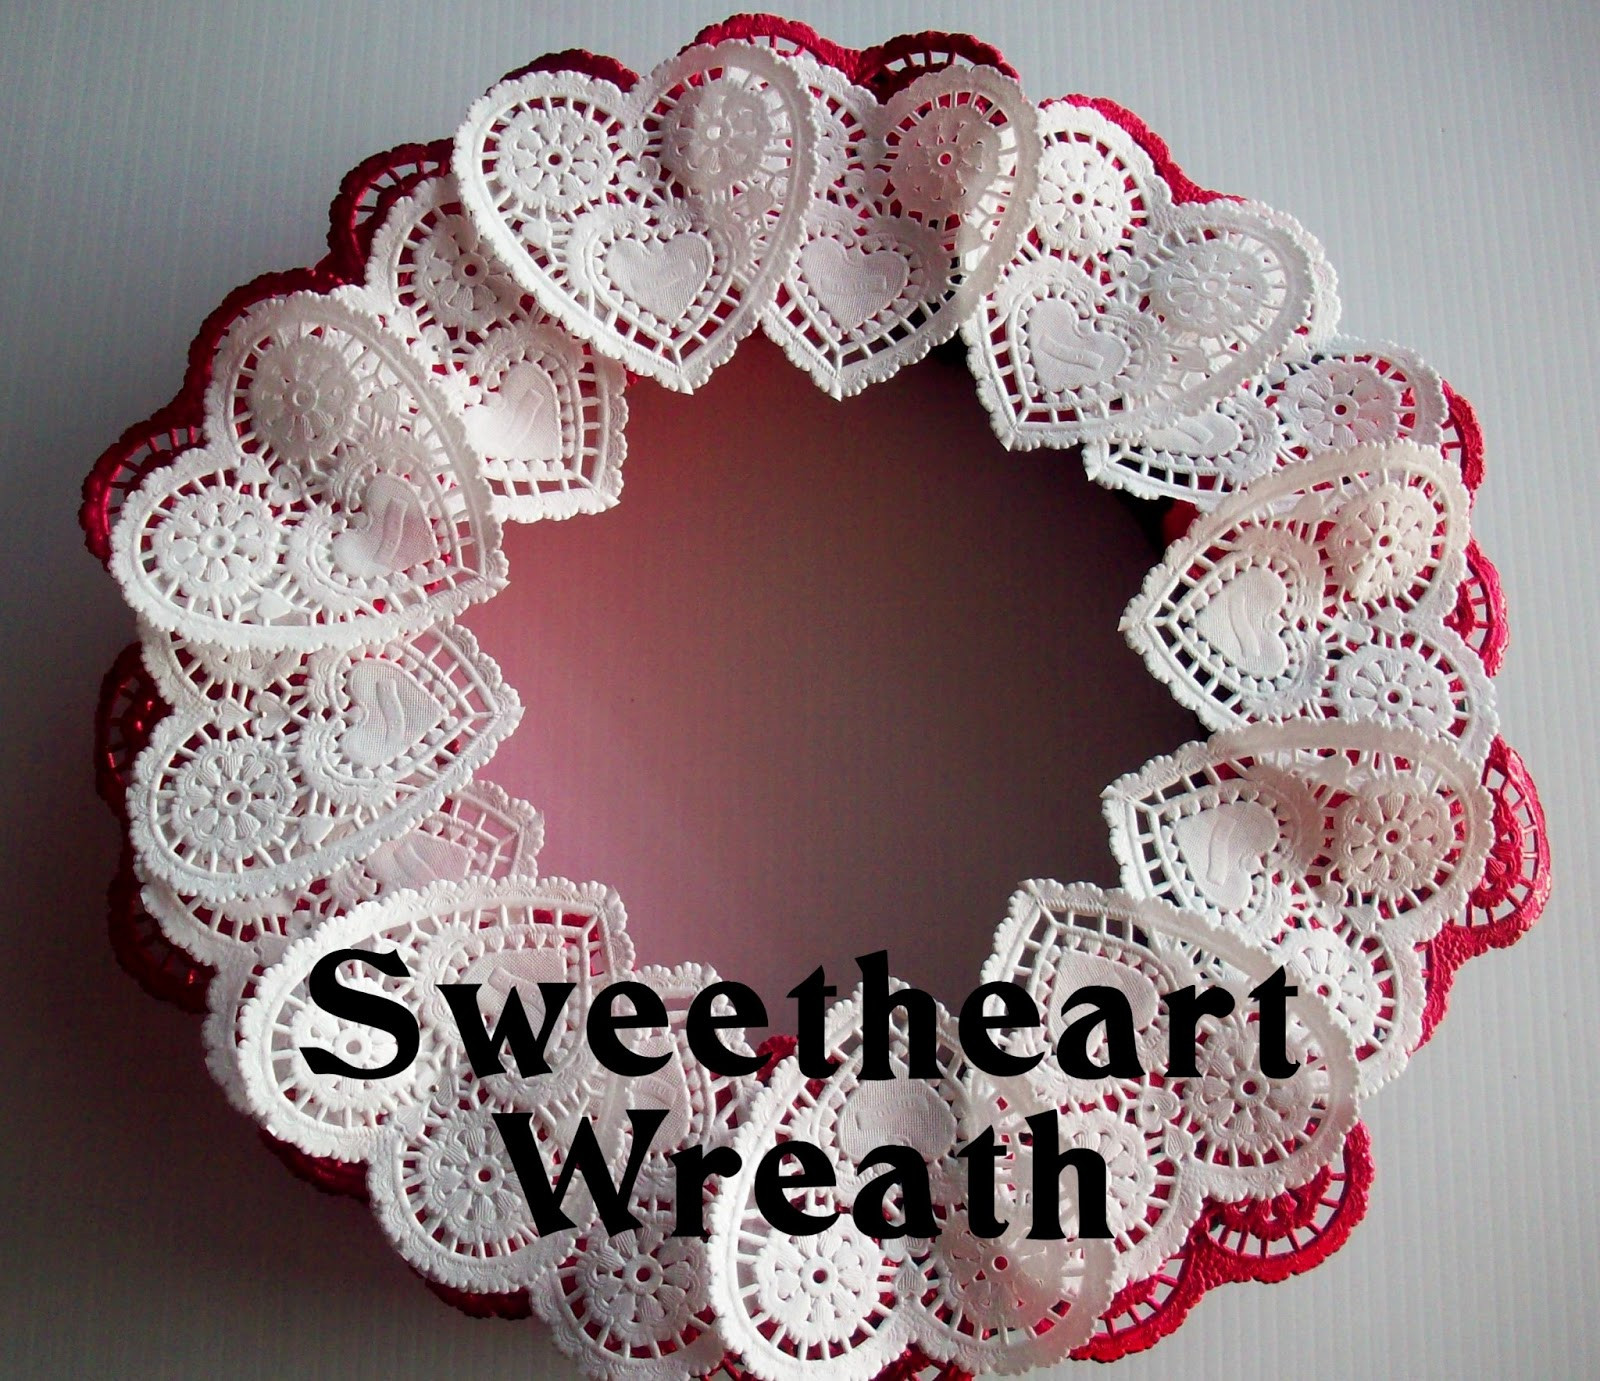 Doily Crafts Elegant Sweetheart Wreath Food Crafts and Family Of Contemporary 47 Photos Doily Crafts